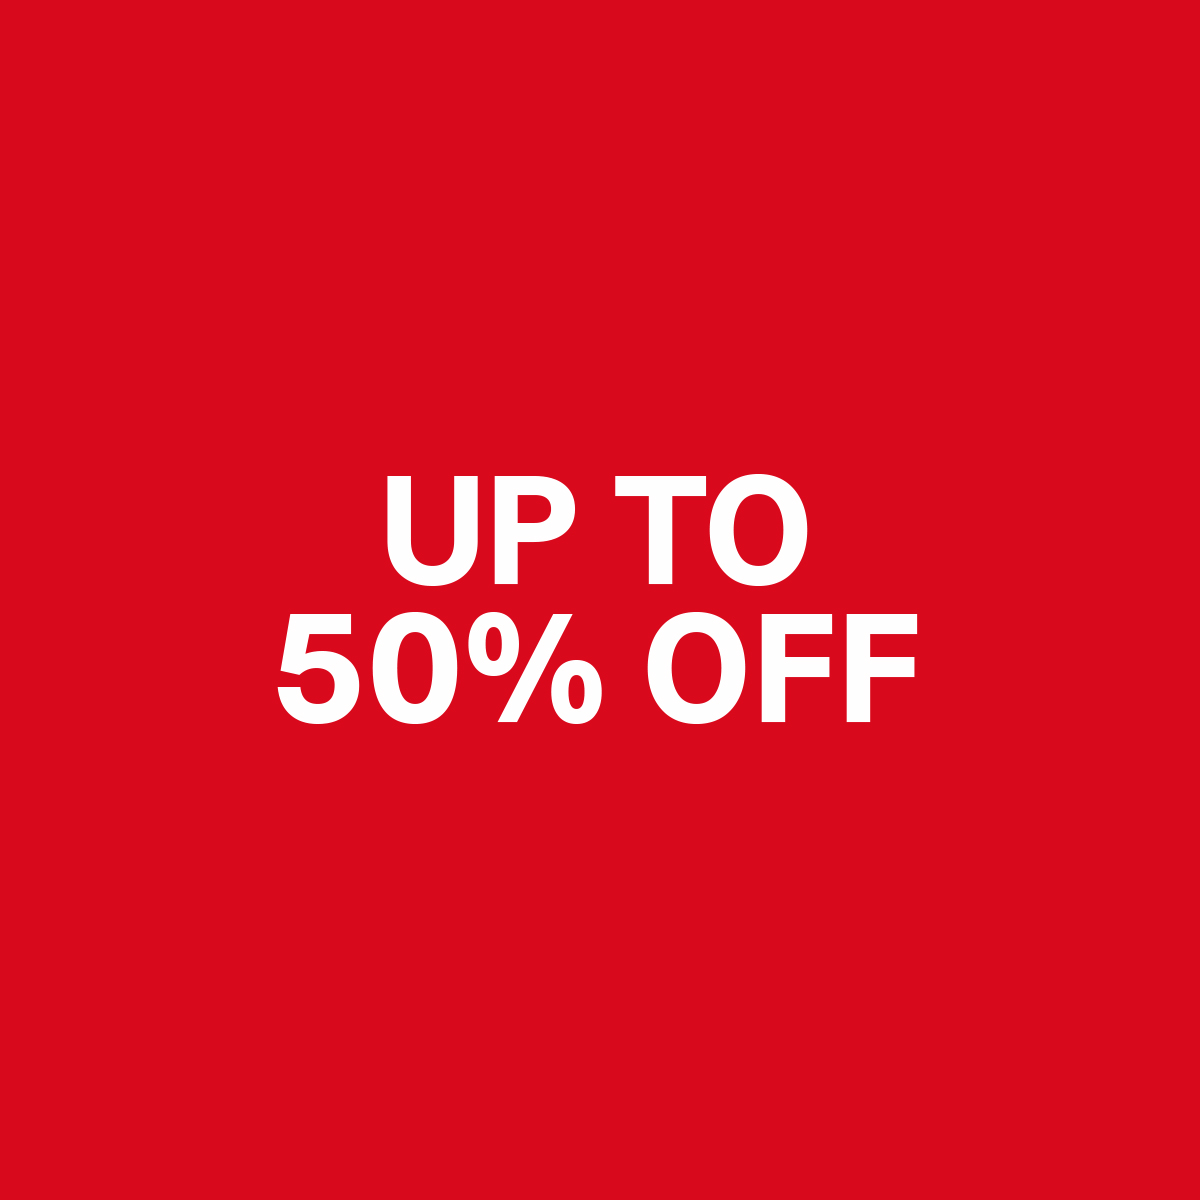 It's finally here! SALE IS ON! Find quality fashion for all from R 130 now! https://t.co/lrYrrJYTTo